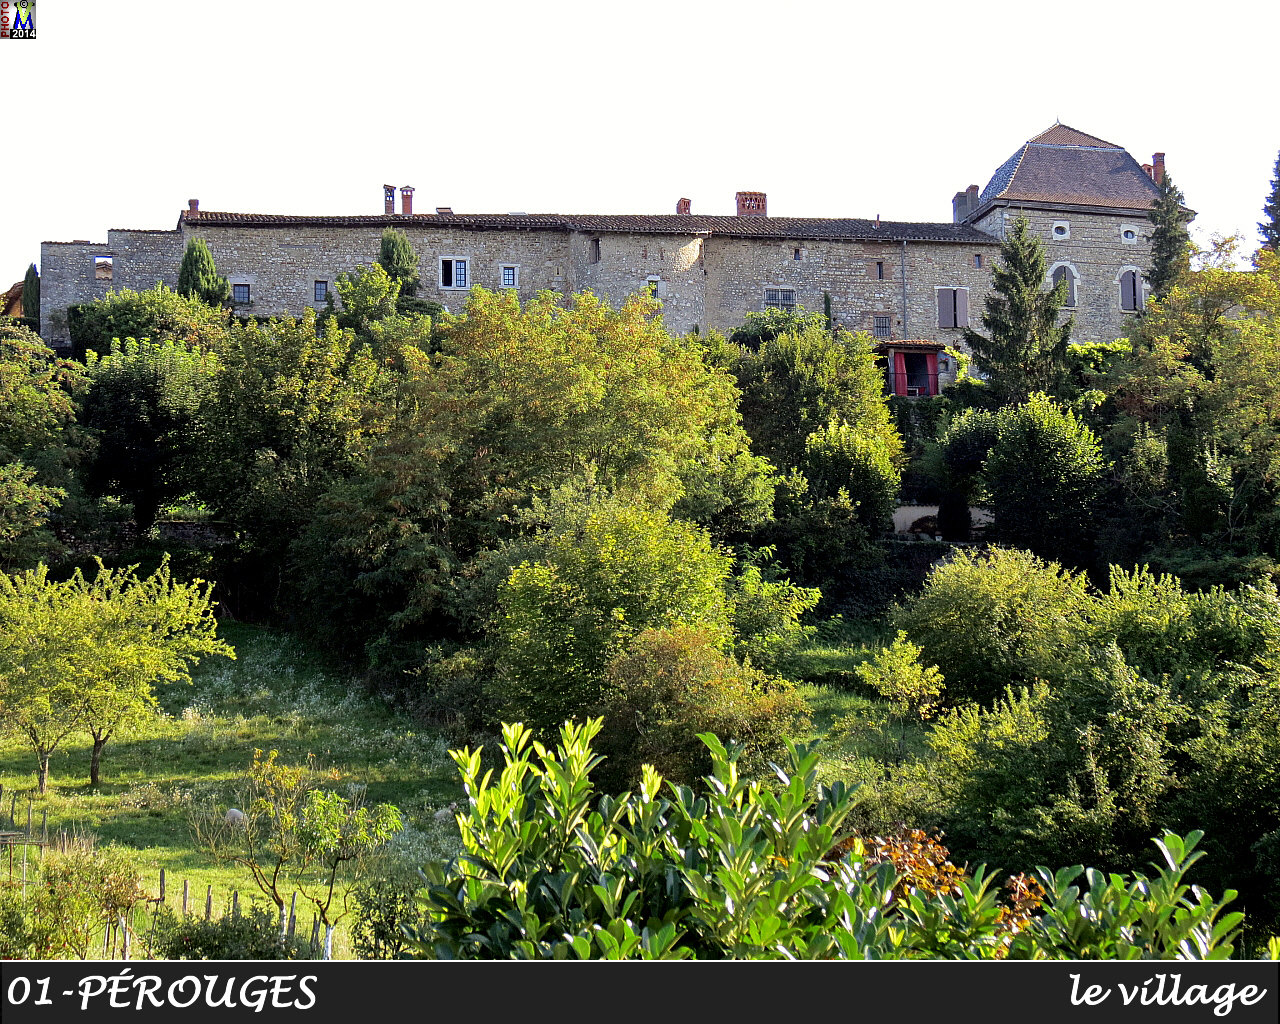 01PEROUGES_village_104.jpg